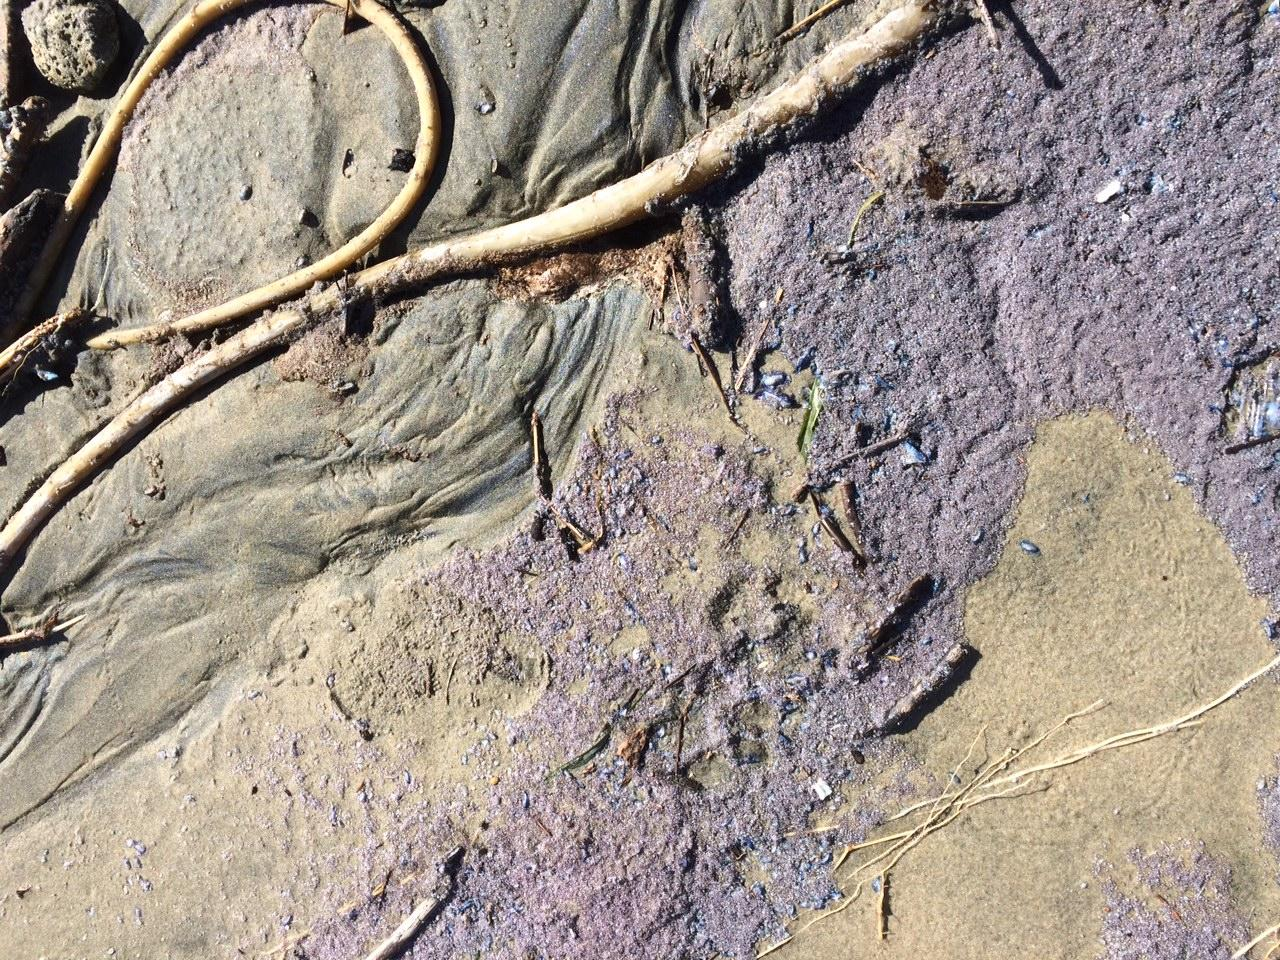 Purple mass high in wrack line at Driftwood State Park